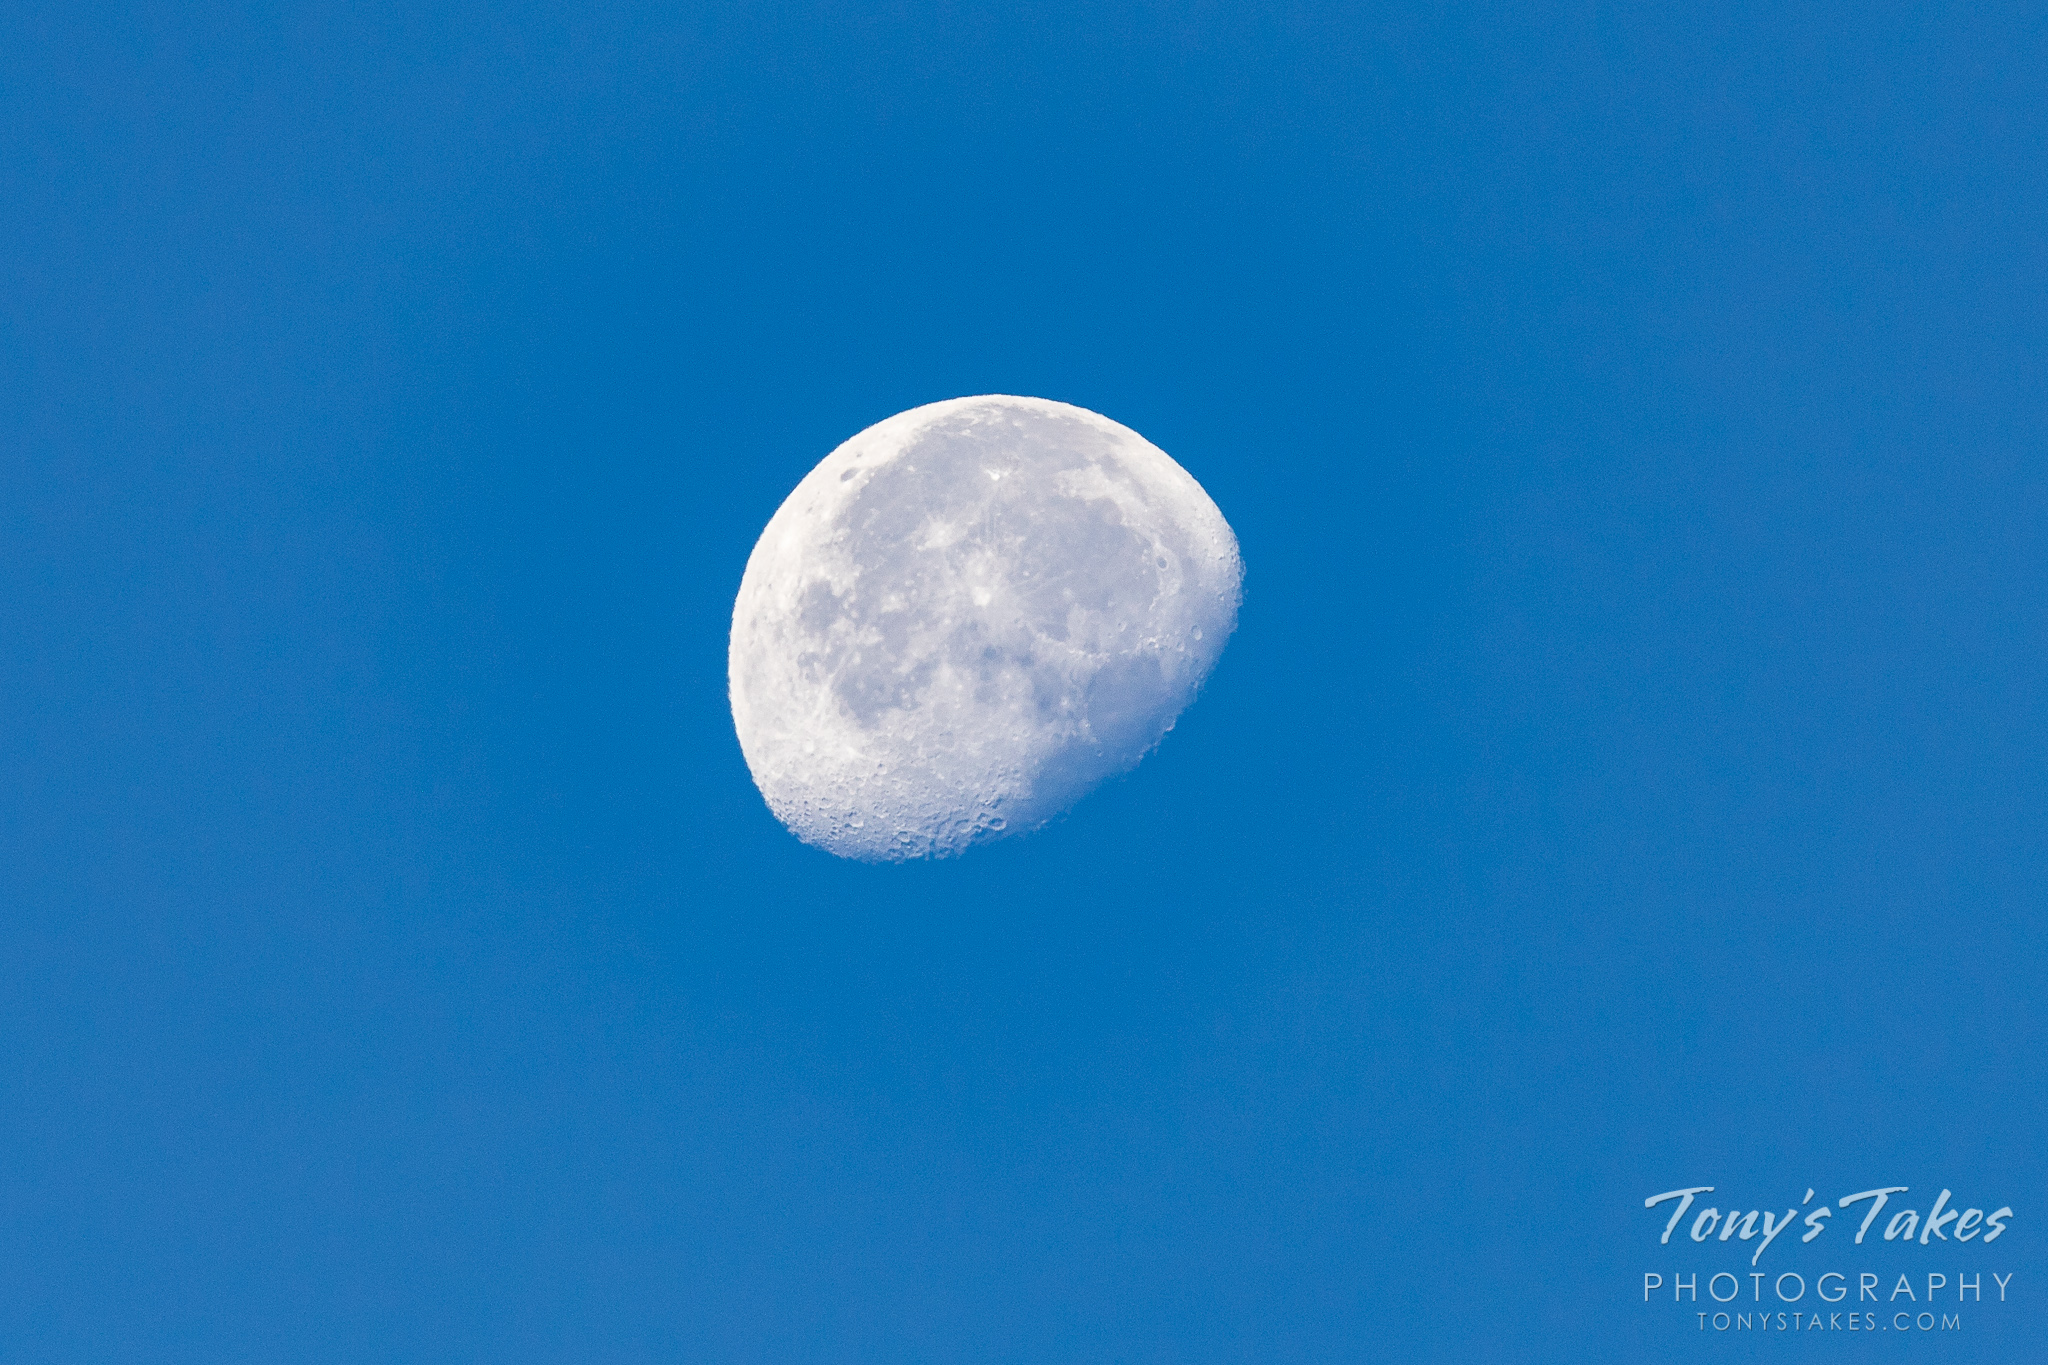 A daytime waning gibbous moon as seen from Rocky Mountain National Park in Colorado. (© Tony's Takes)